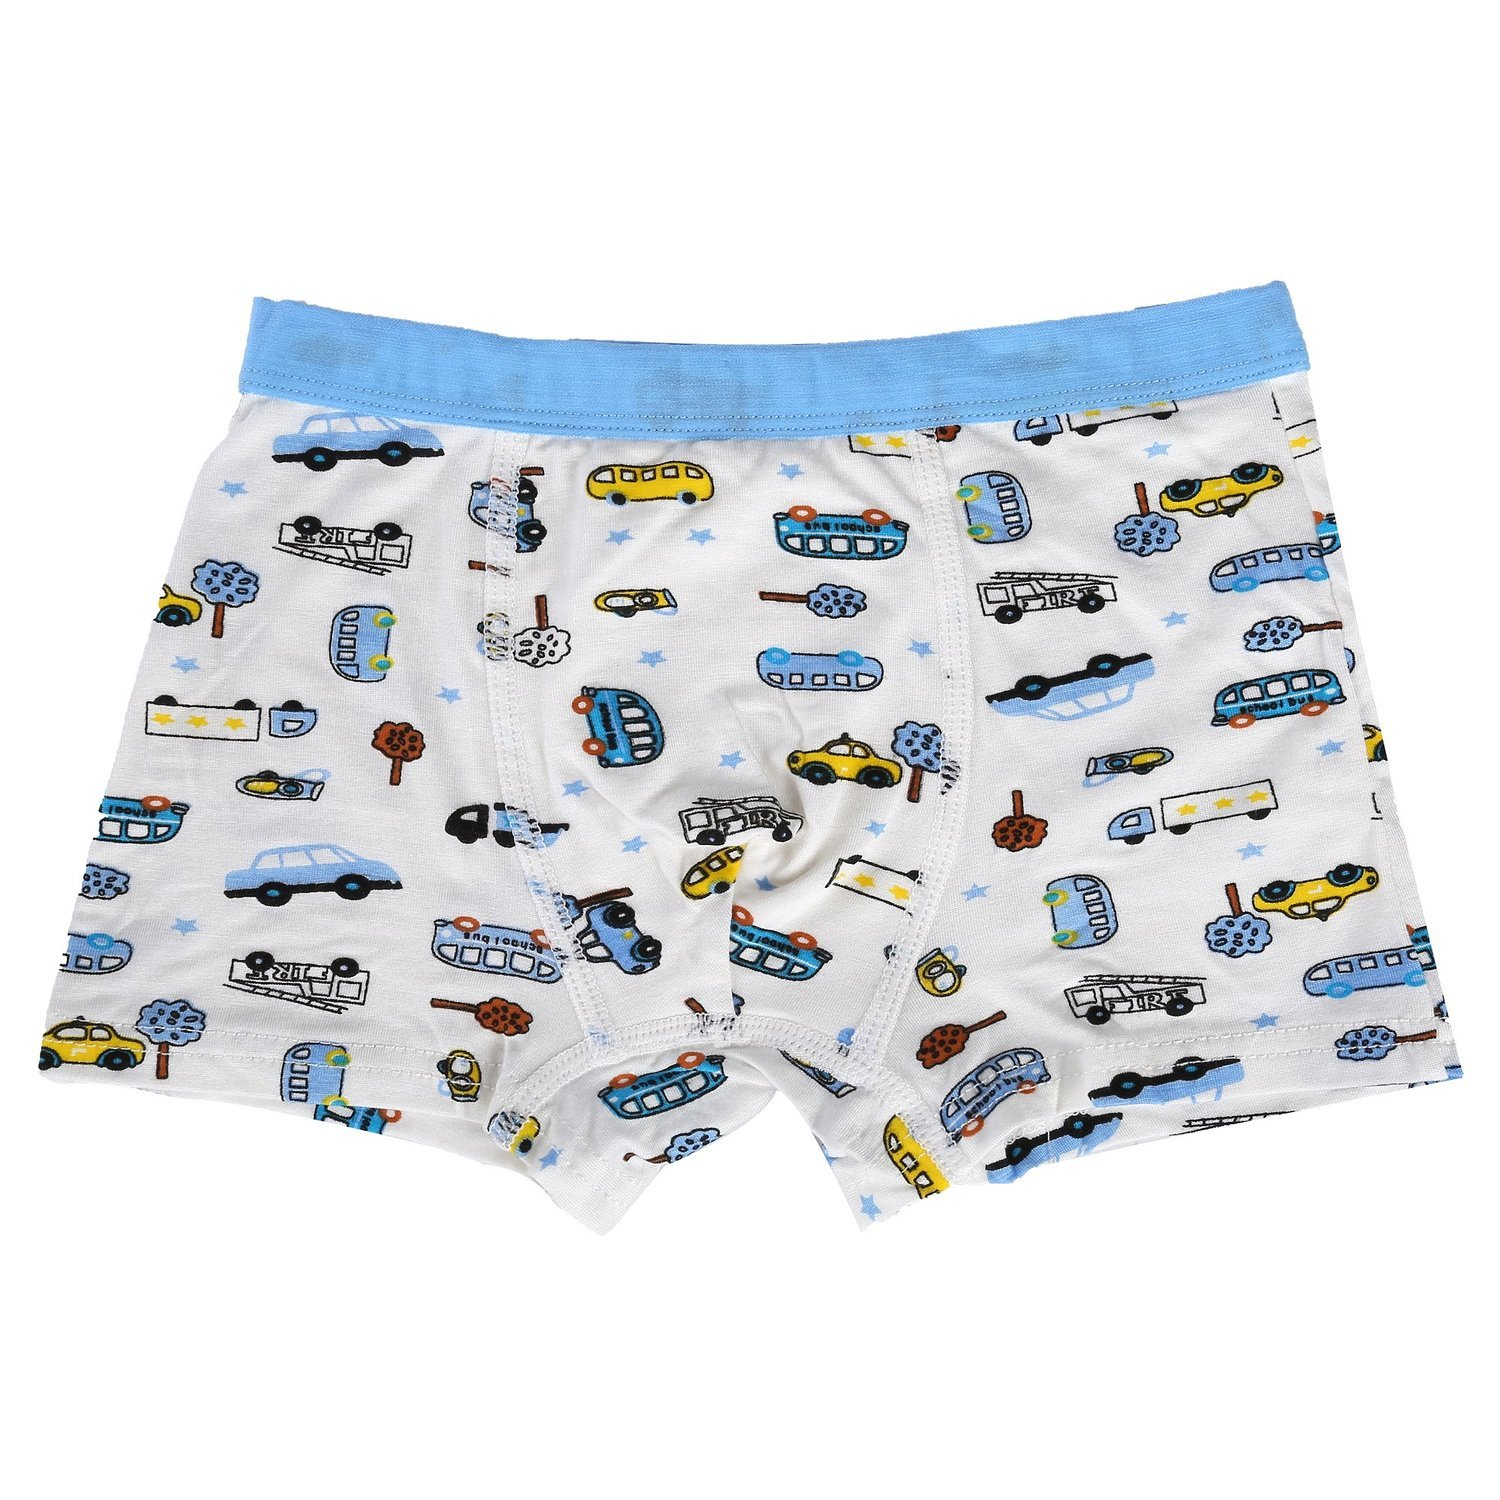 Bala Bala Boy's Boxer Brief Multicolor Underwear (Pack Of 5) (XL/Car Underwear, (Pack Of 5)/Car Underwear) by Bala Bala (Image #3)